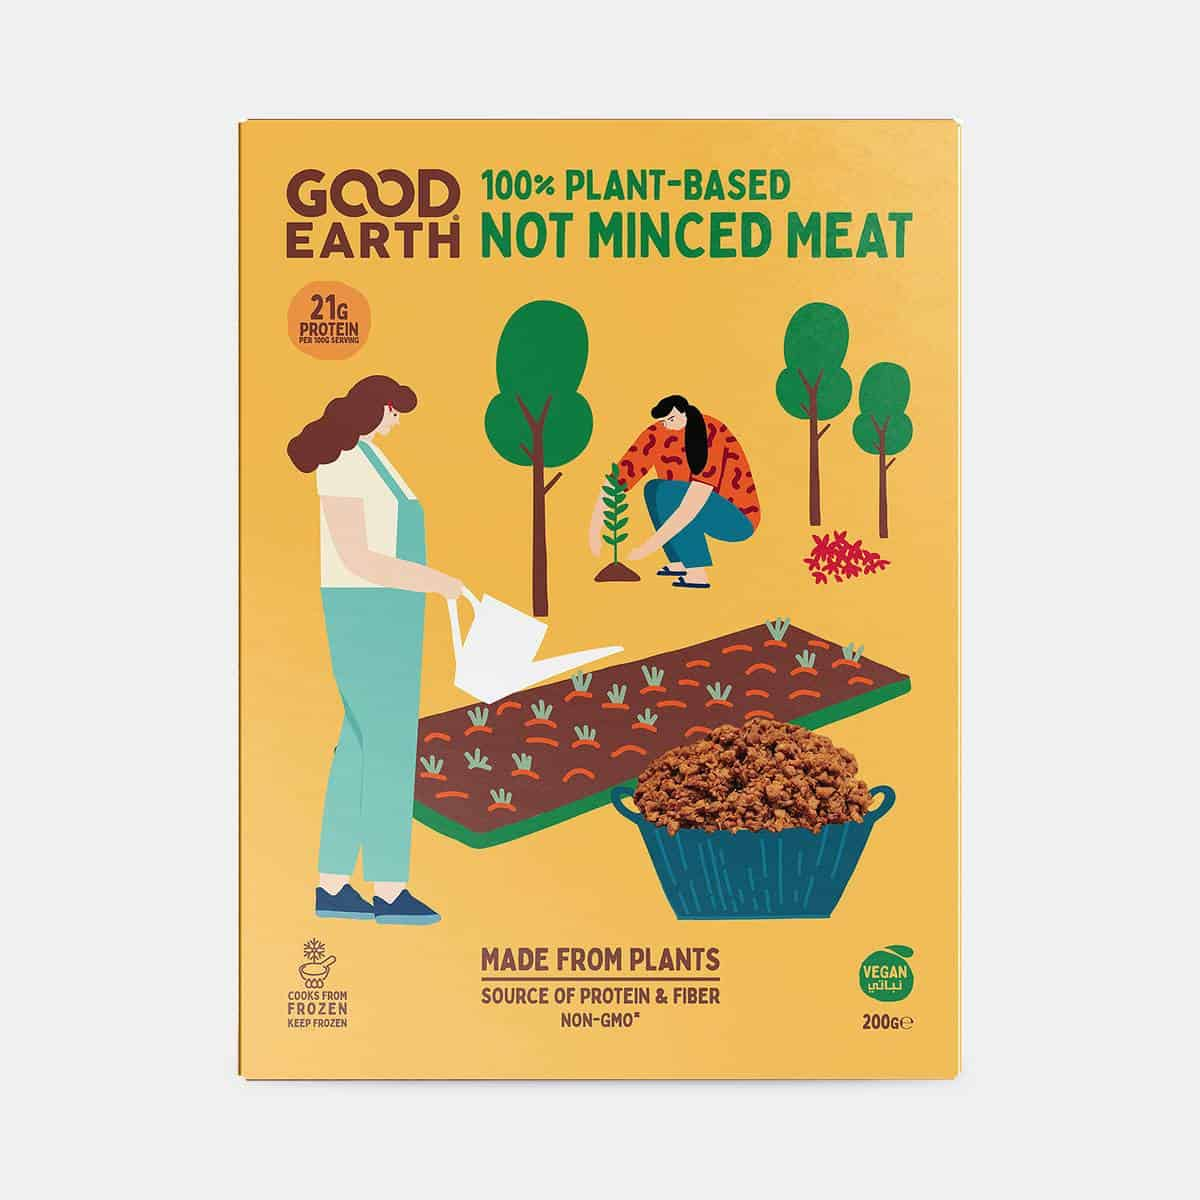 Good Earth Not Minced Meat 200g Pack Perspective Shot